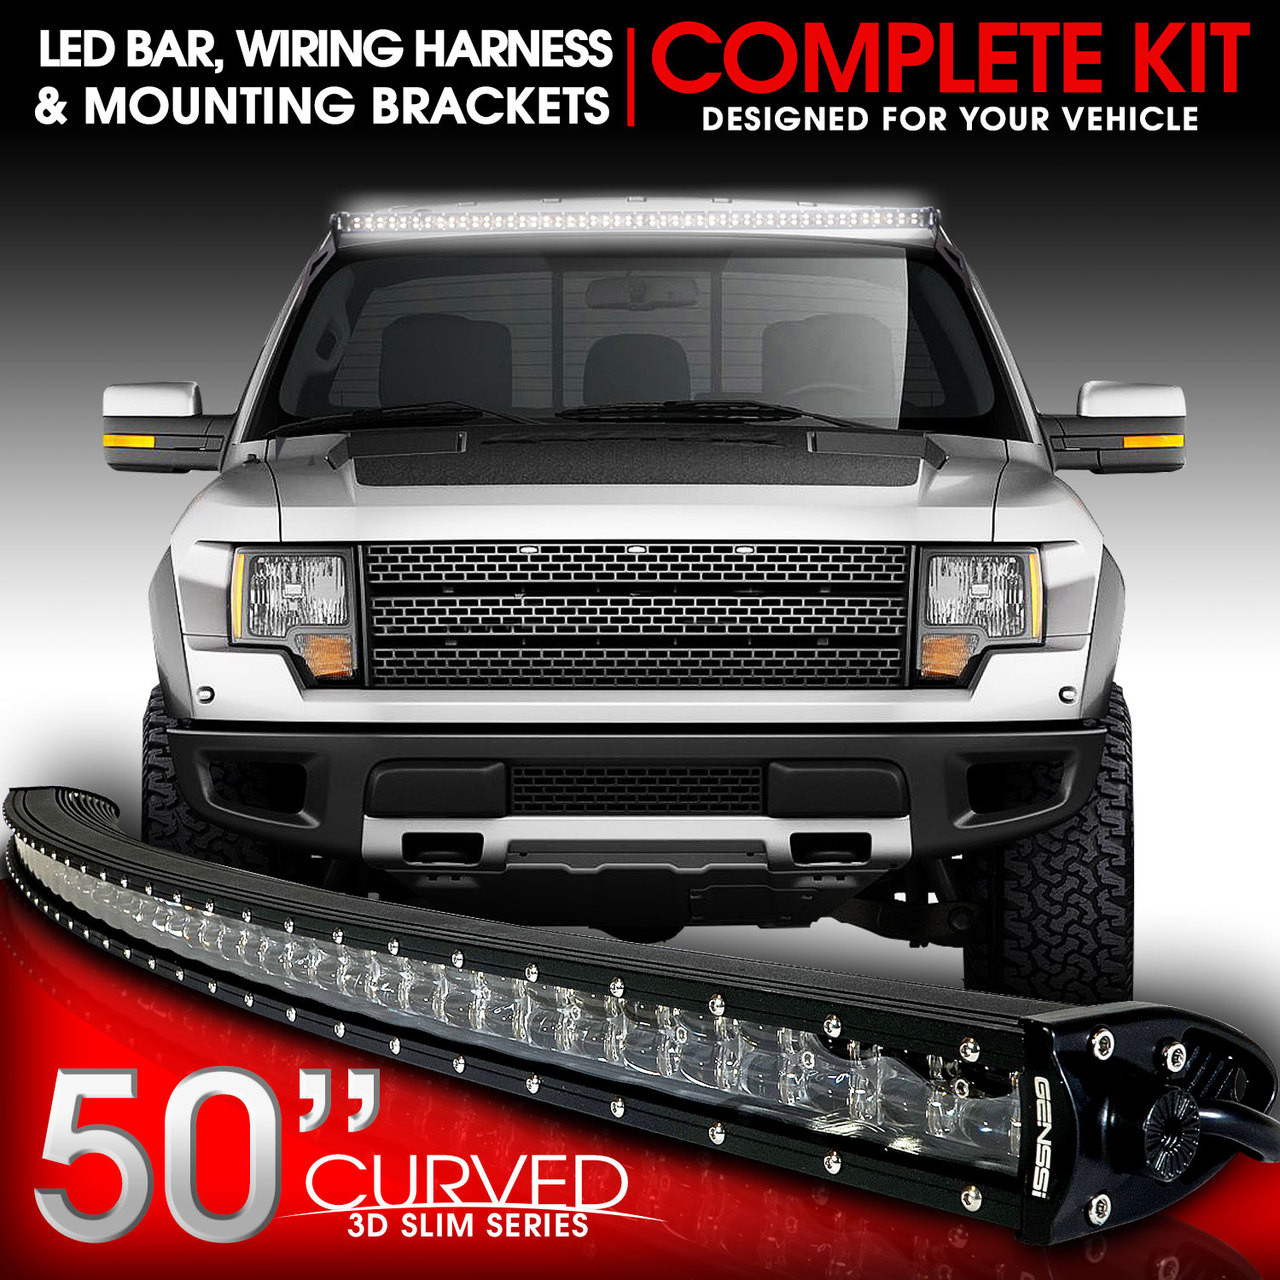 small resolution of led light bar curved 288w 50 inches bracket wiring harness kit forled light bar curved 288w